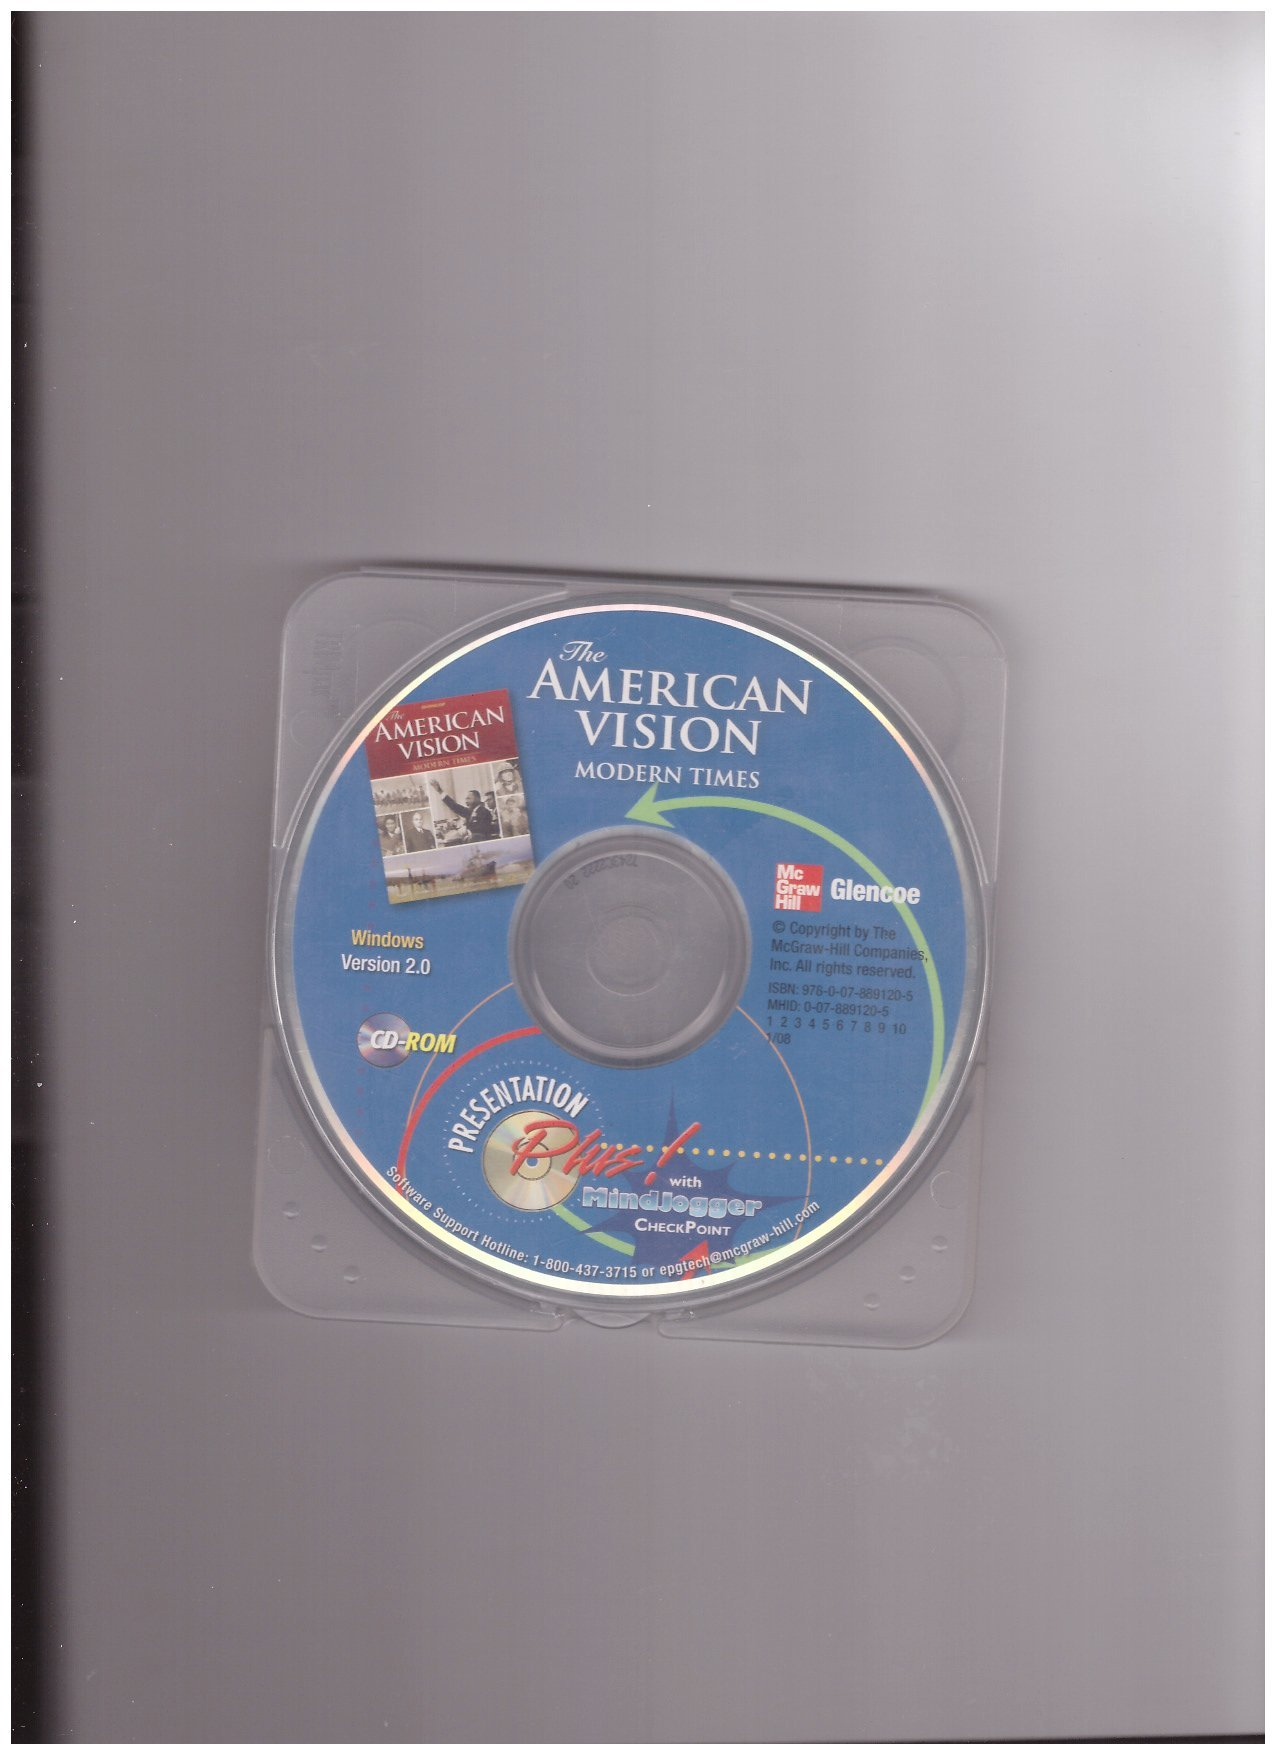 Download Glencoe The American Vision Modern Times Presentation Plus! with Mindjogger CheckPoint Cd-rom PDF